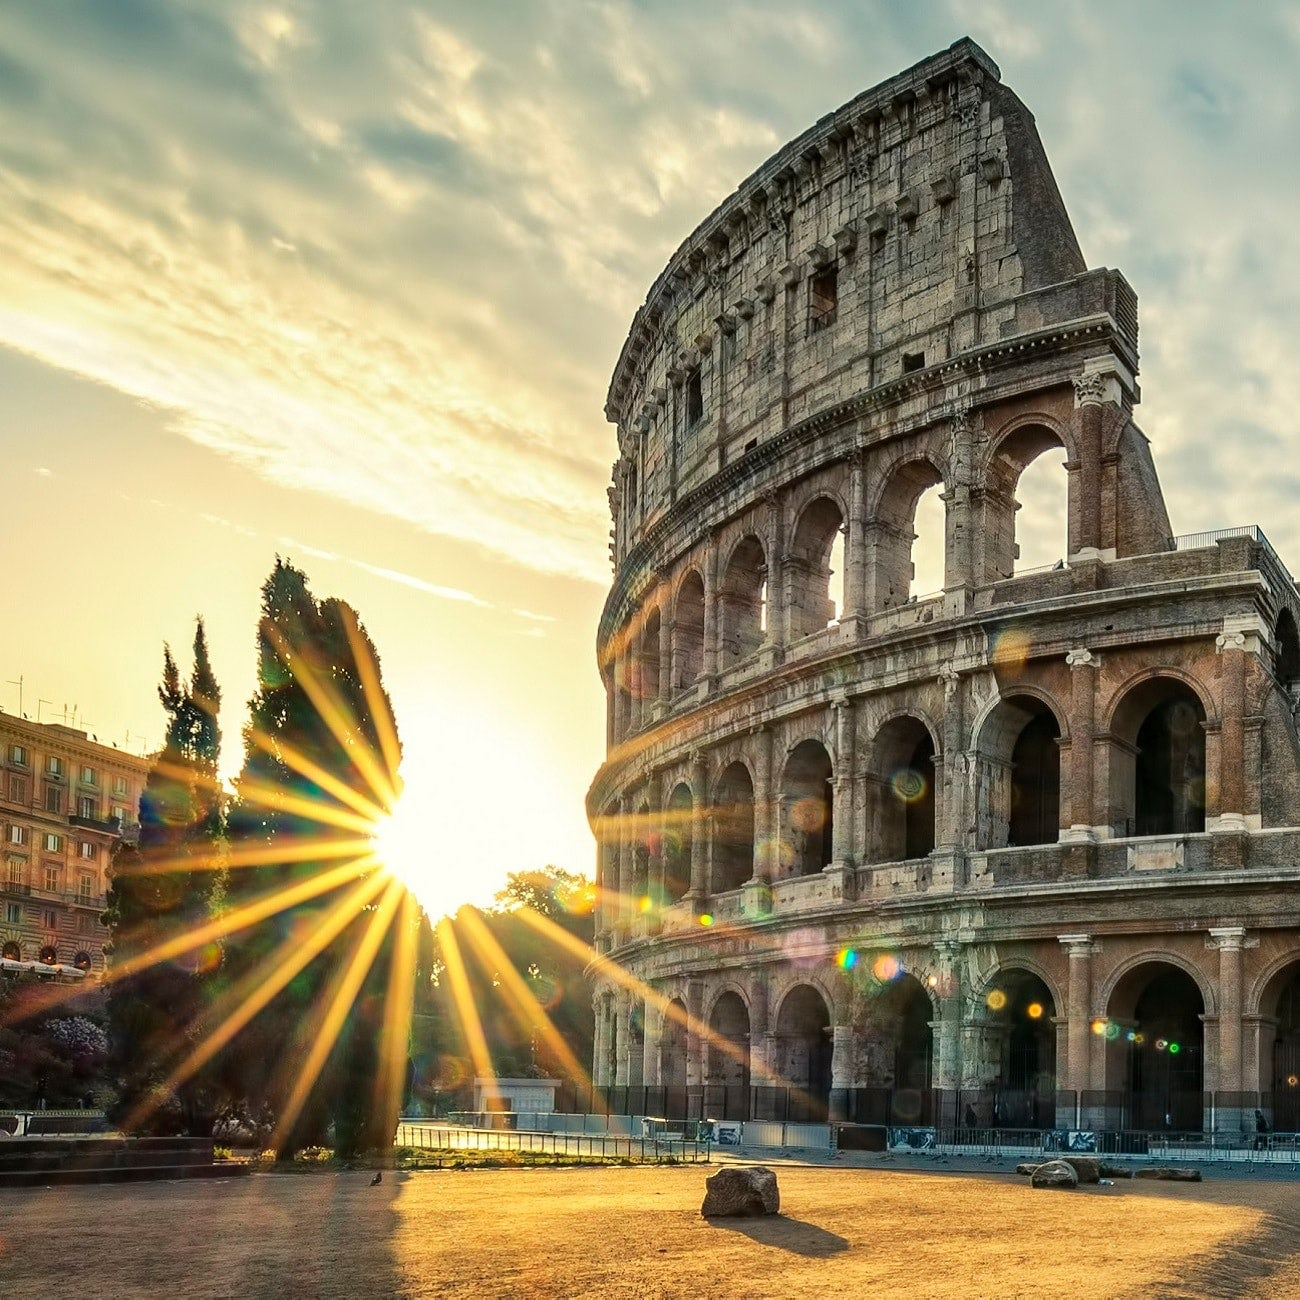 Tivoli Ny Sightseeing Rome Explorer Summer 2019